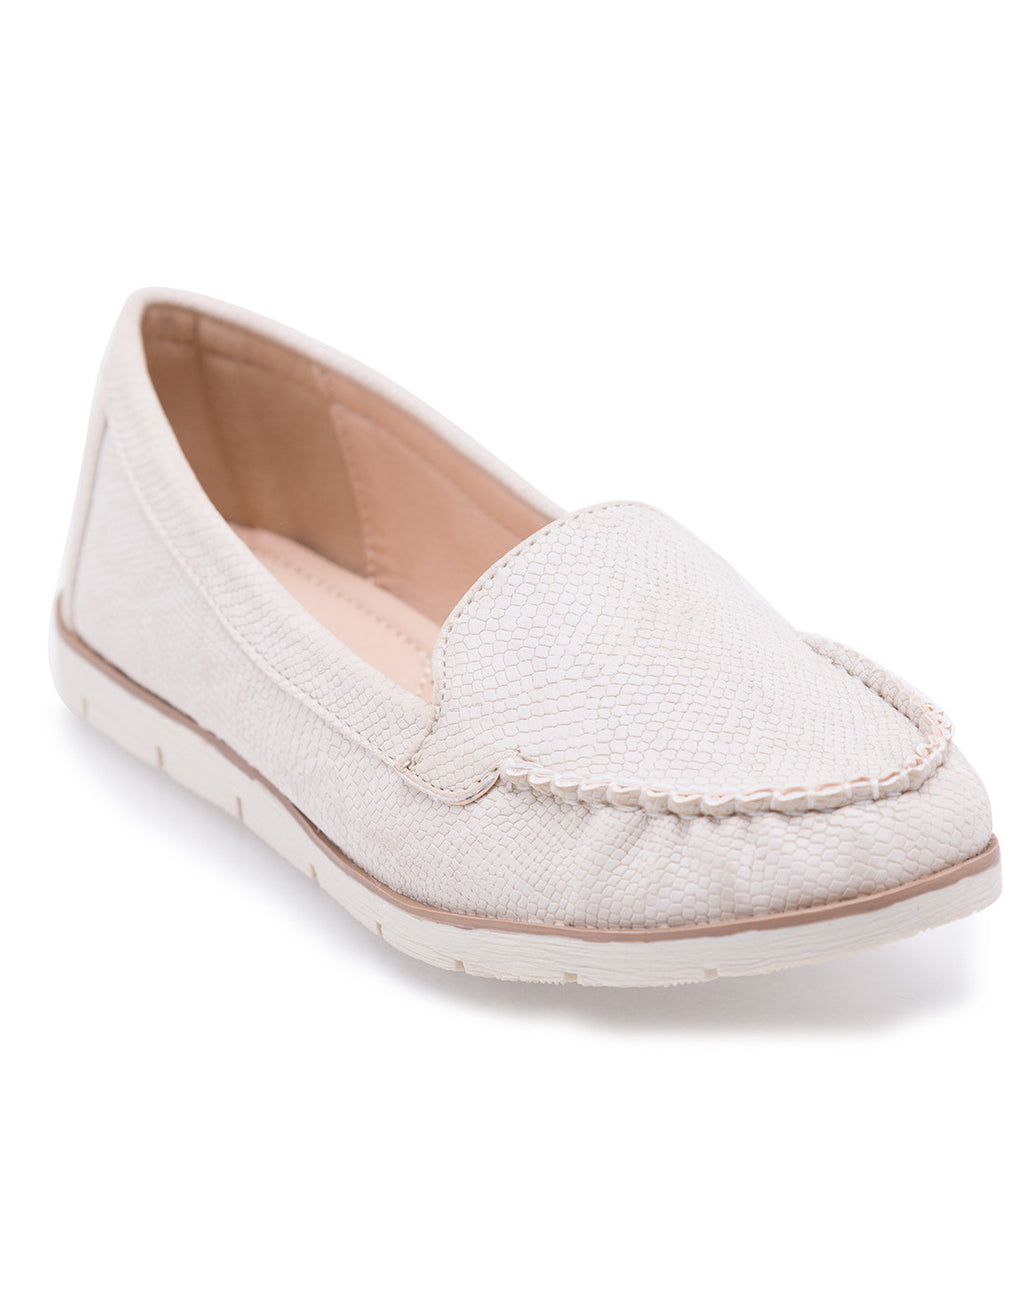 Ariana Loafer Flat